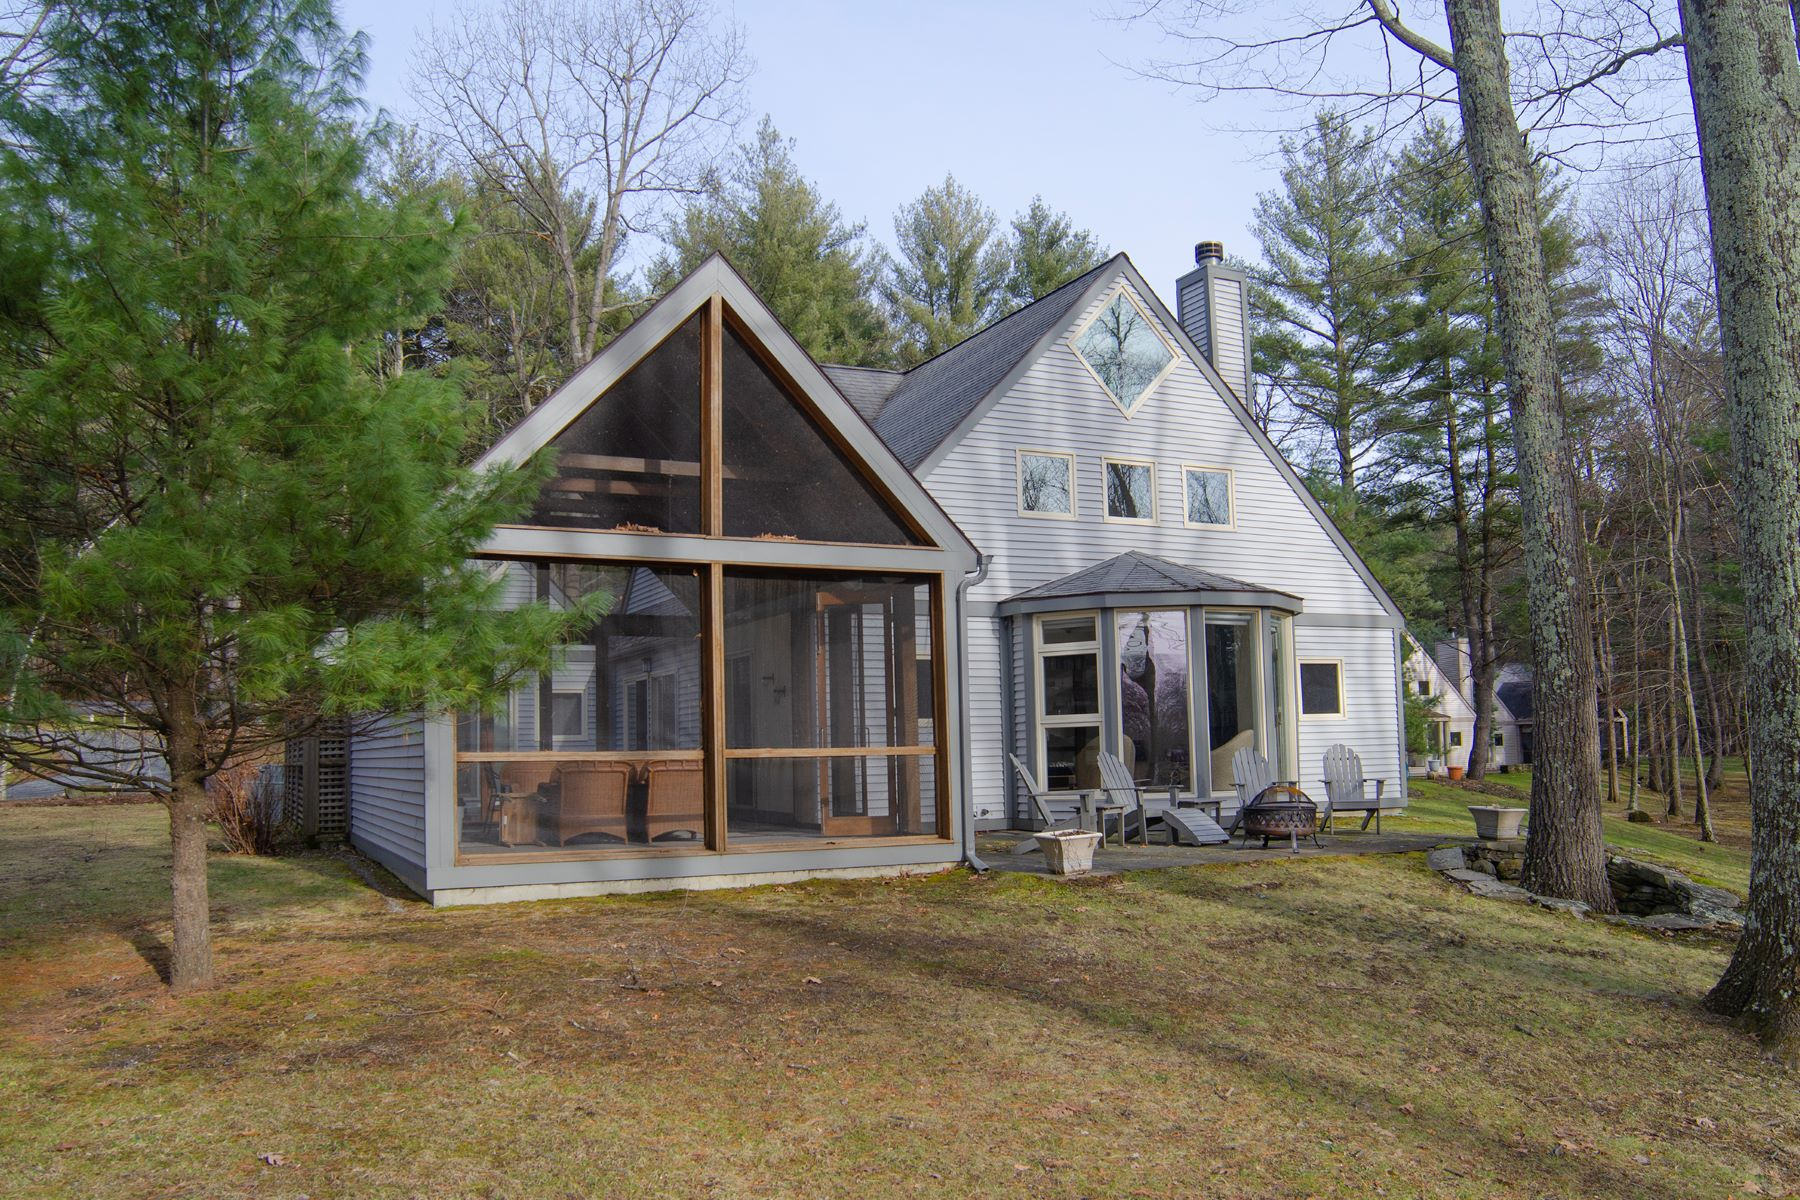 Single Family Home for Sale at Idyllic Waterfront at Long Lake 134 Arcadia Drive Ancram, New York 12502 United States